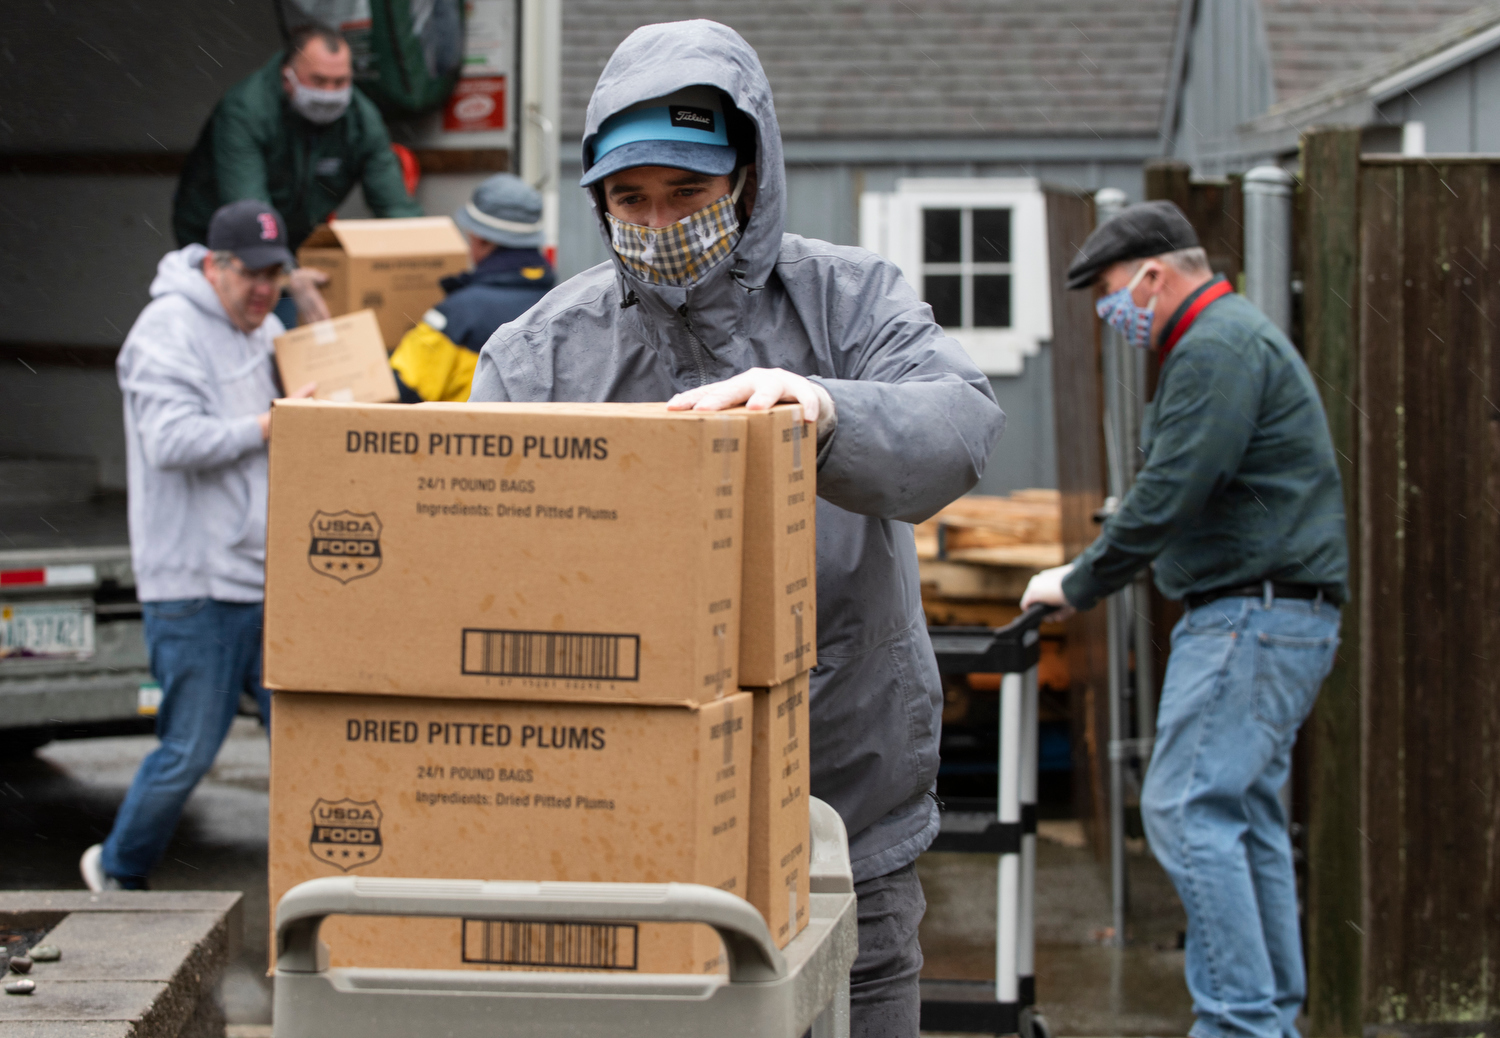 HYANNIS - Town golf course employees brave the wind and rain to bring in a food delivery to the Adult Community Center on Friday, April 3, 2020. The crew was tasked with putting together 240 bags of food to be delivered to seniors.